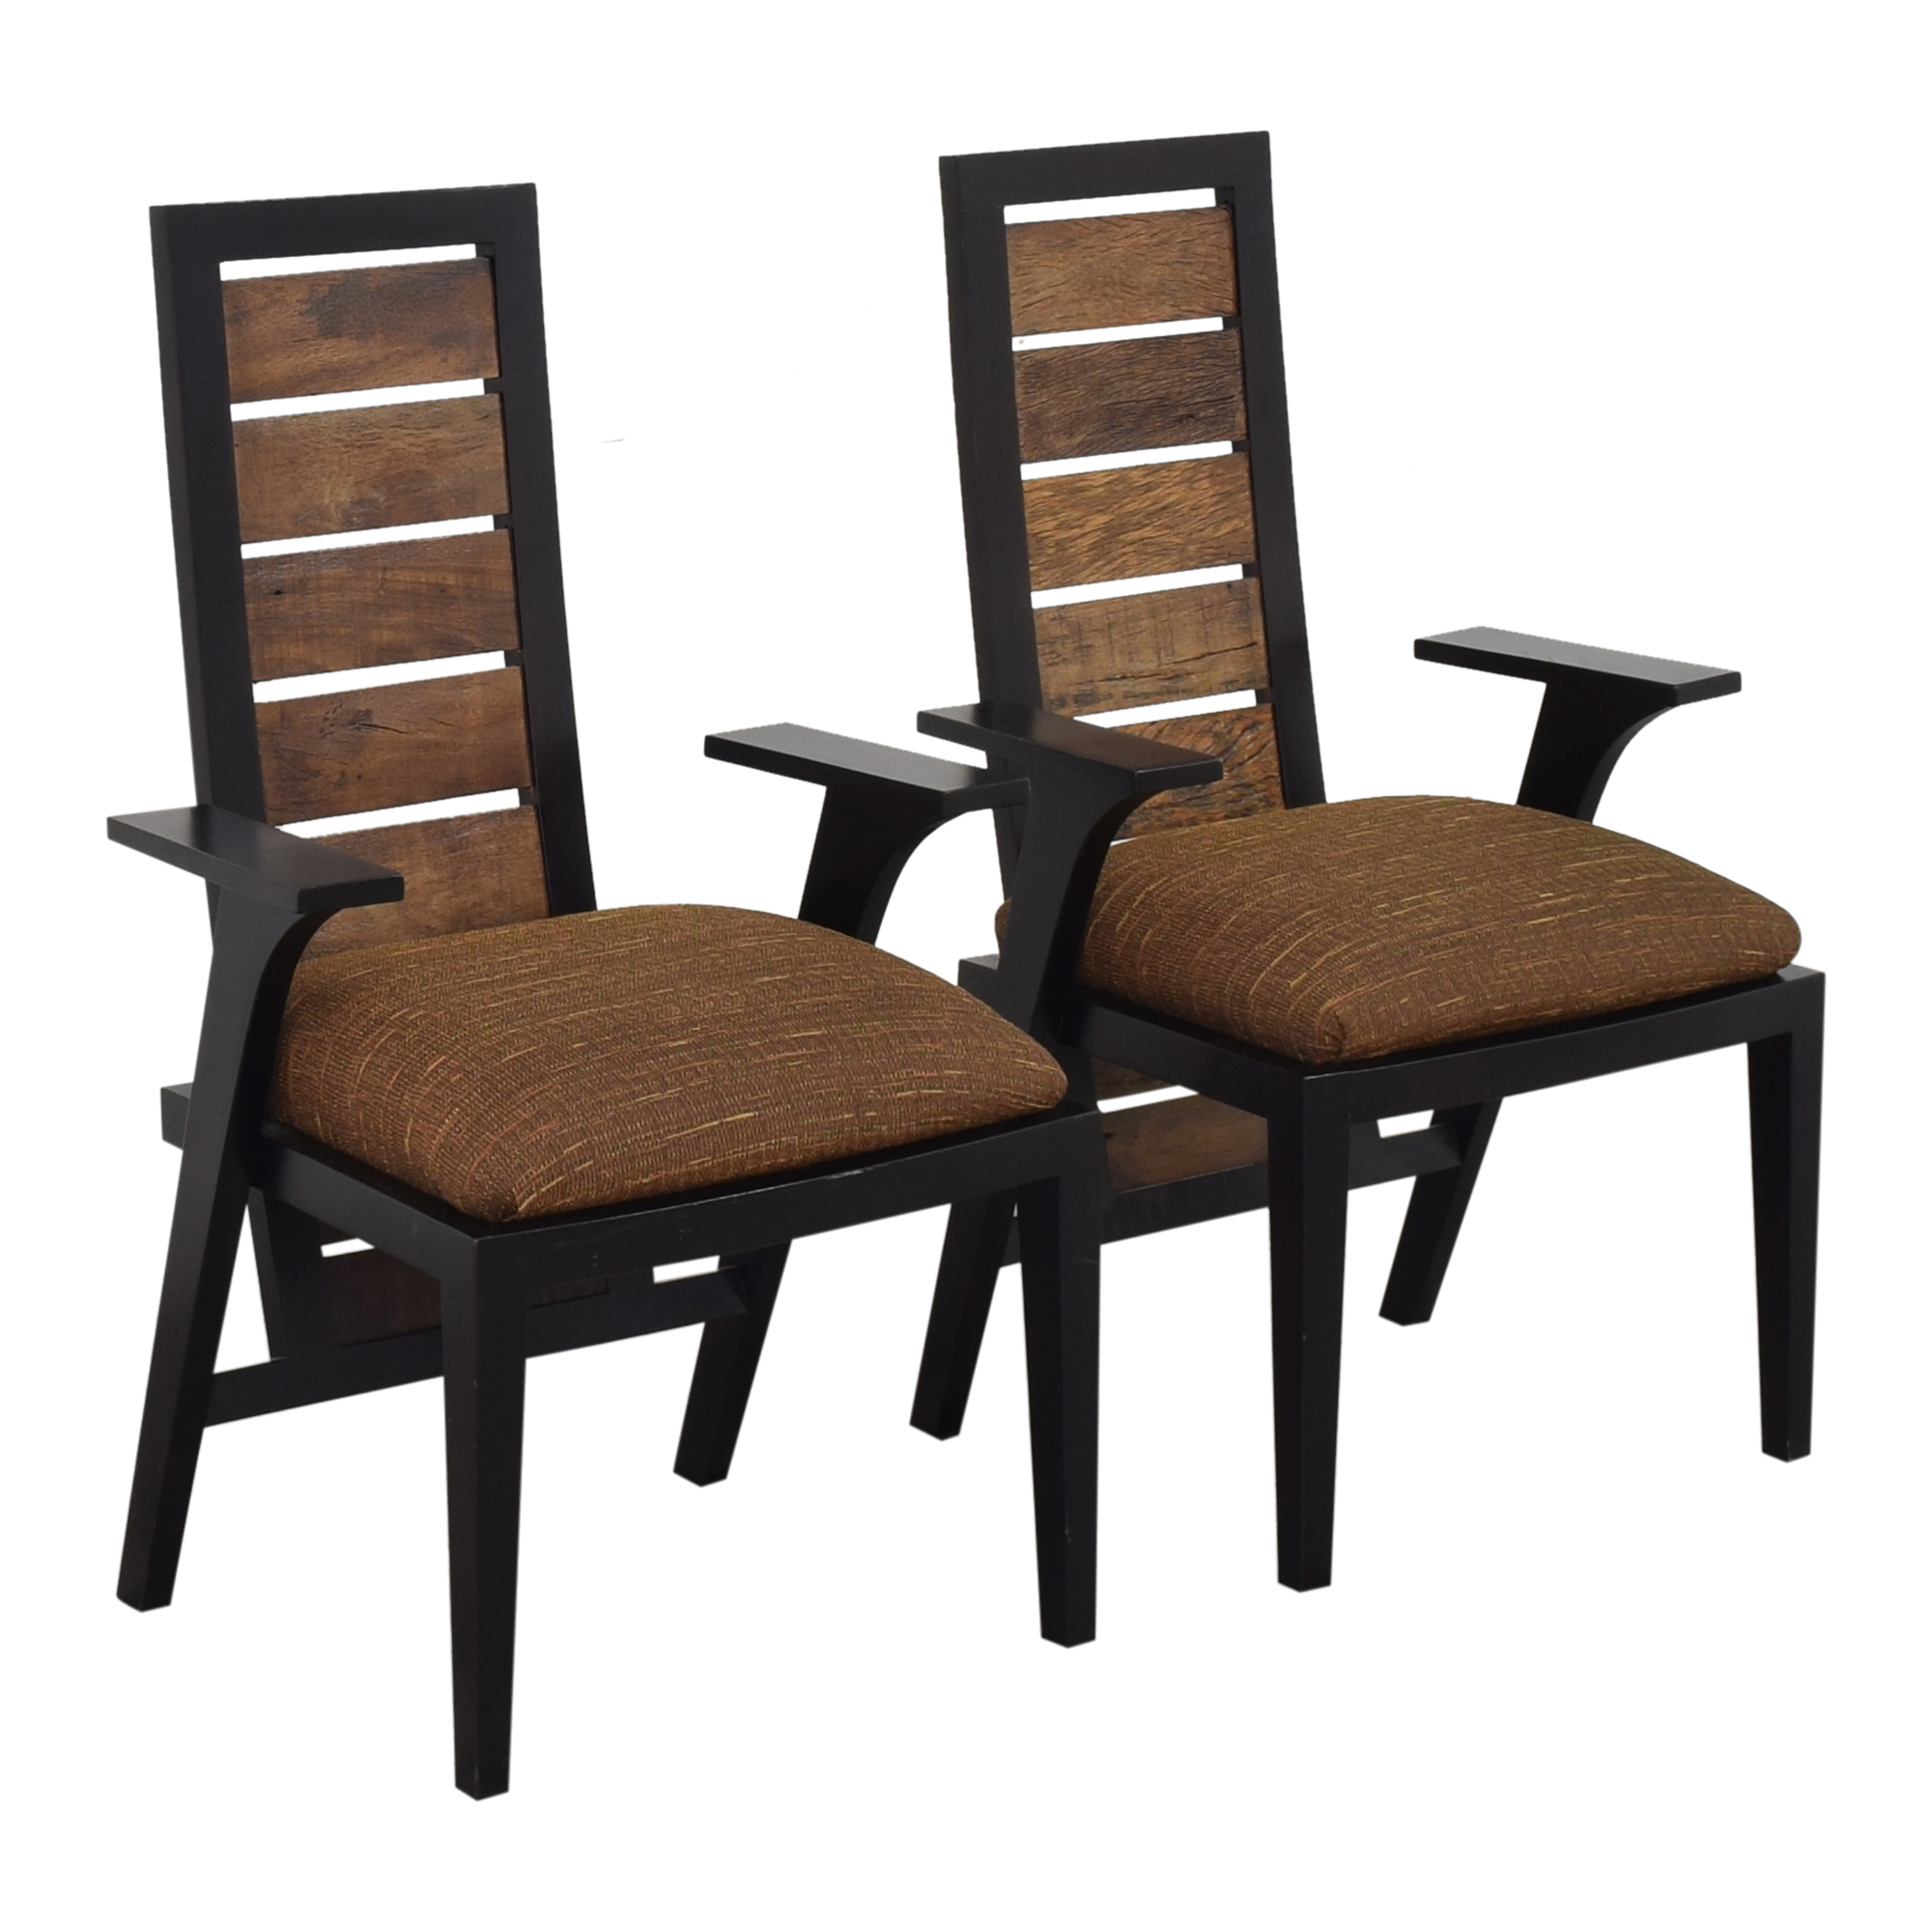 Environment Furniture Environment Furniture Ipanema Chairs used